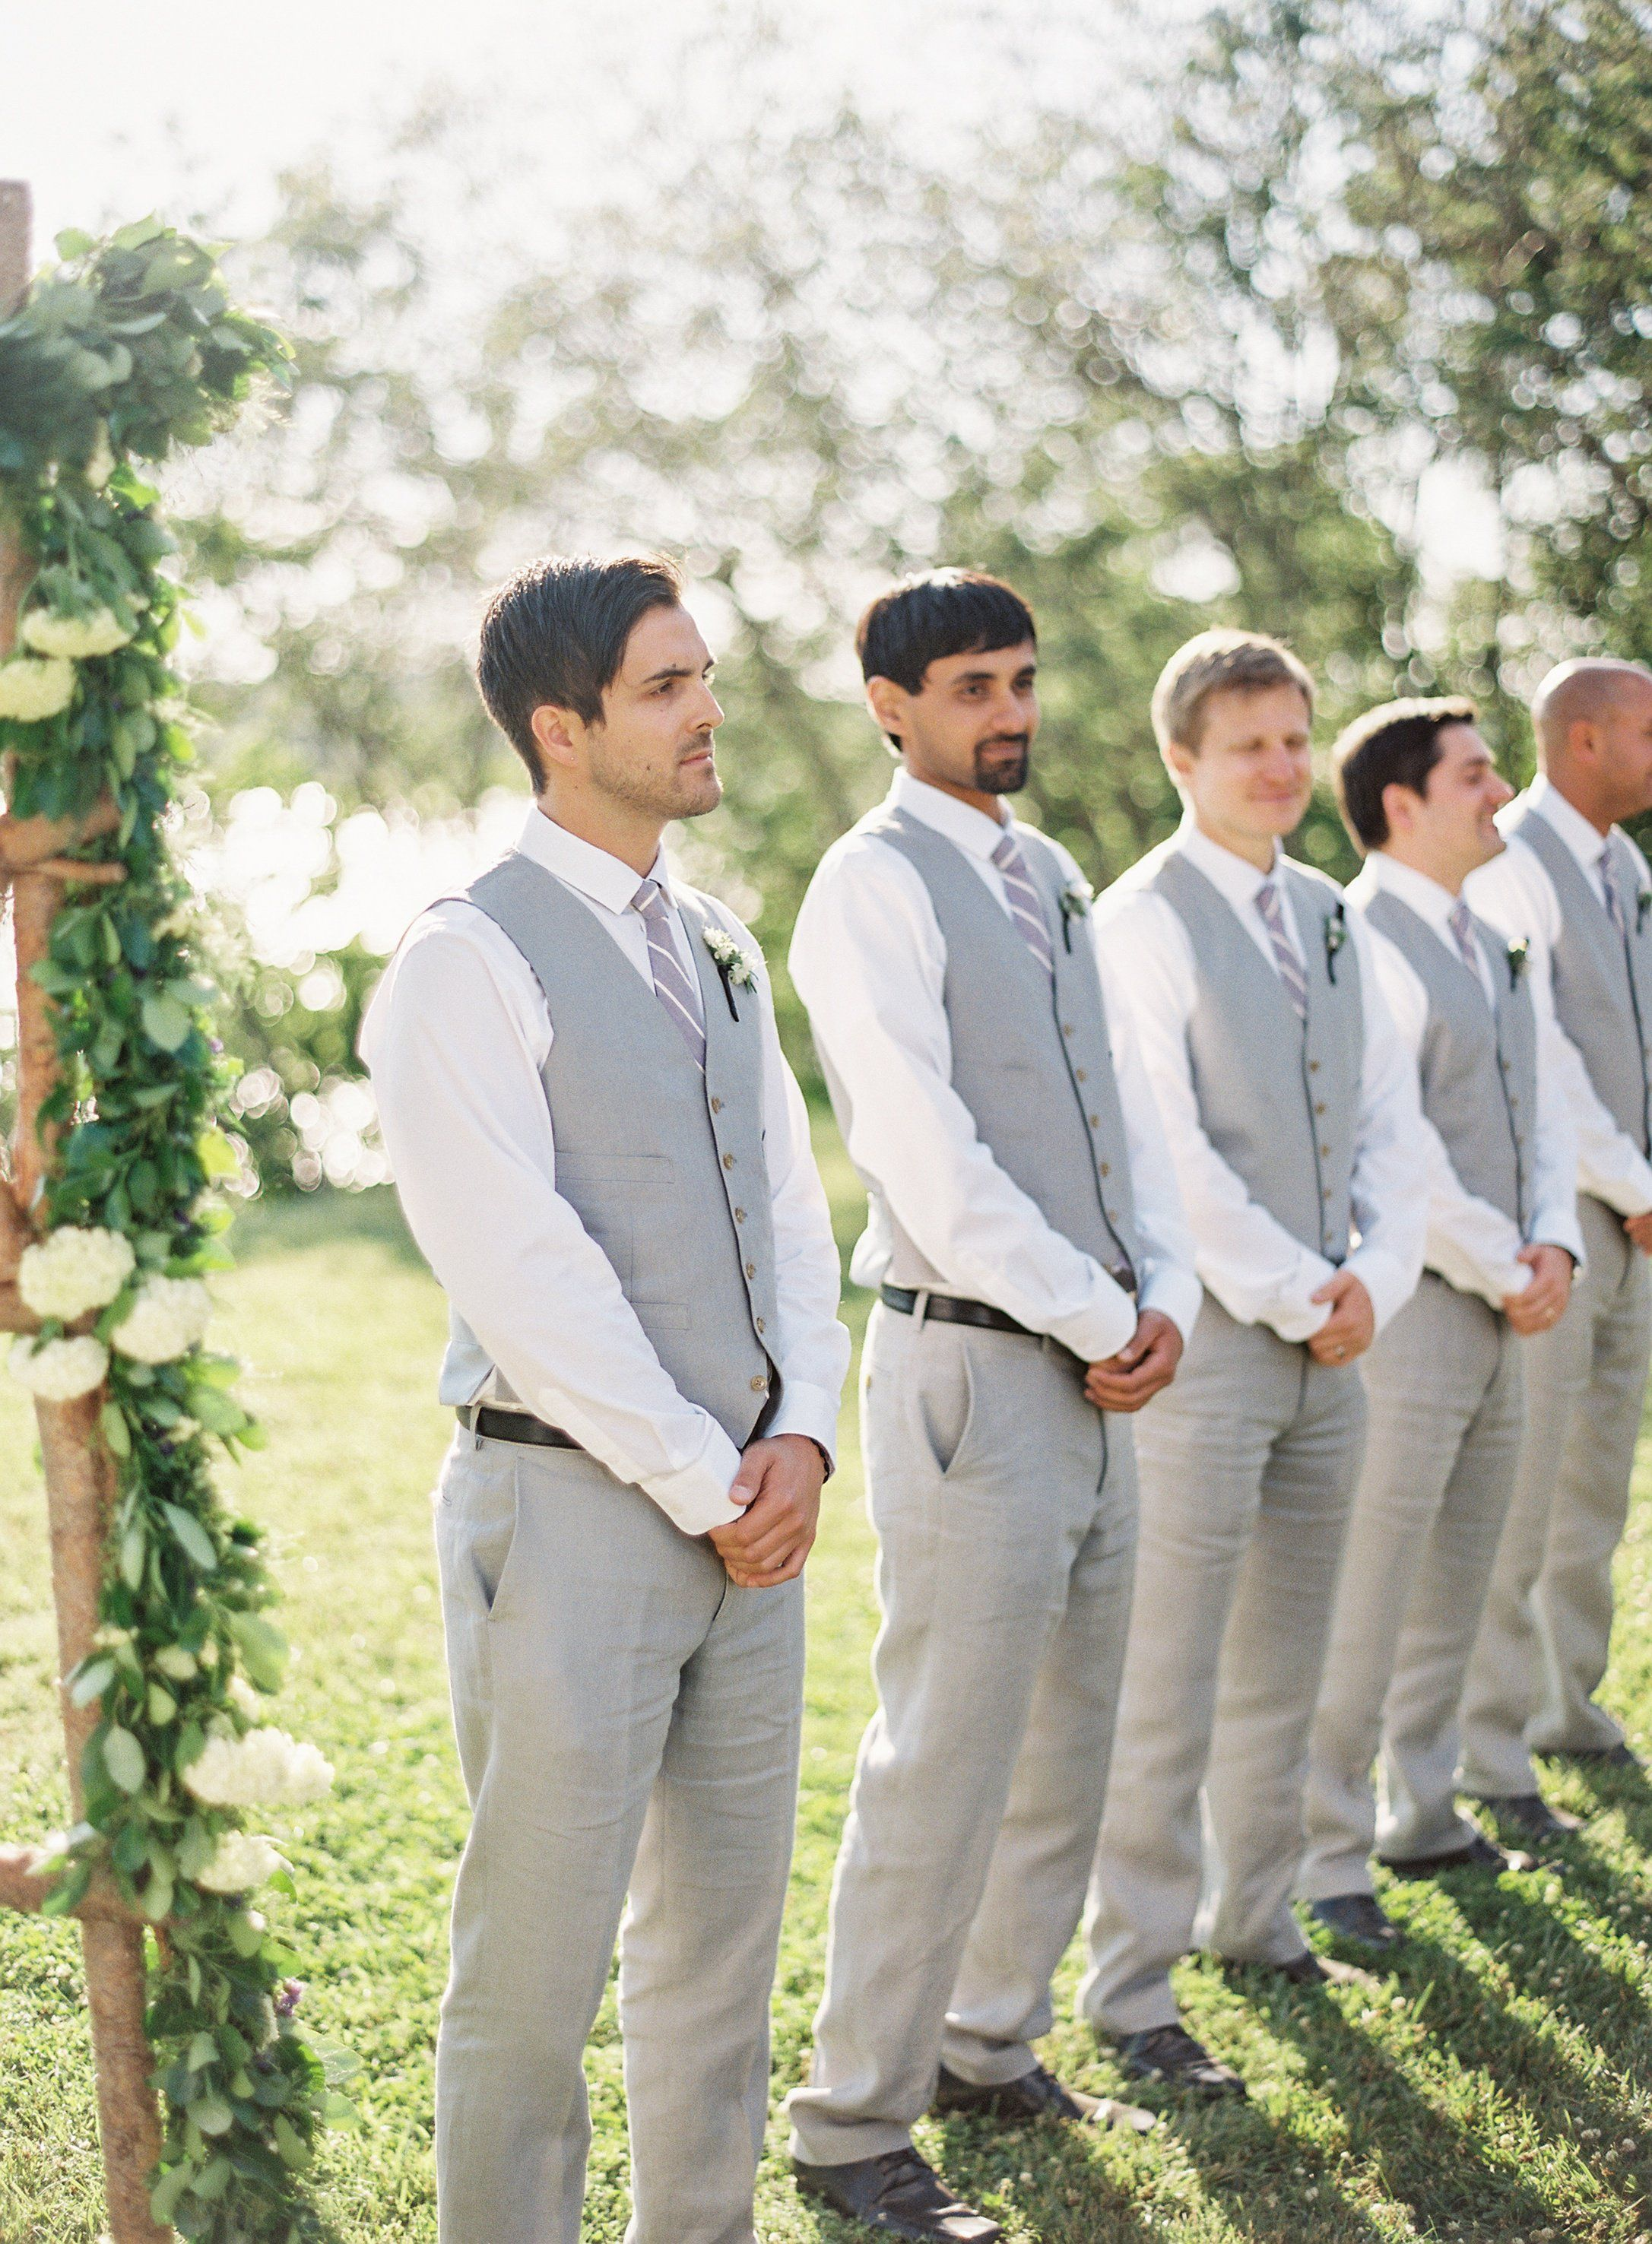 Vintage wedding groom vest - Find This Pin And More On Wedding Planning